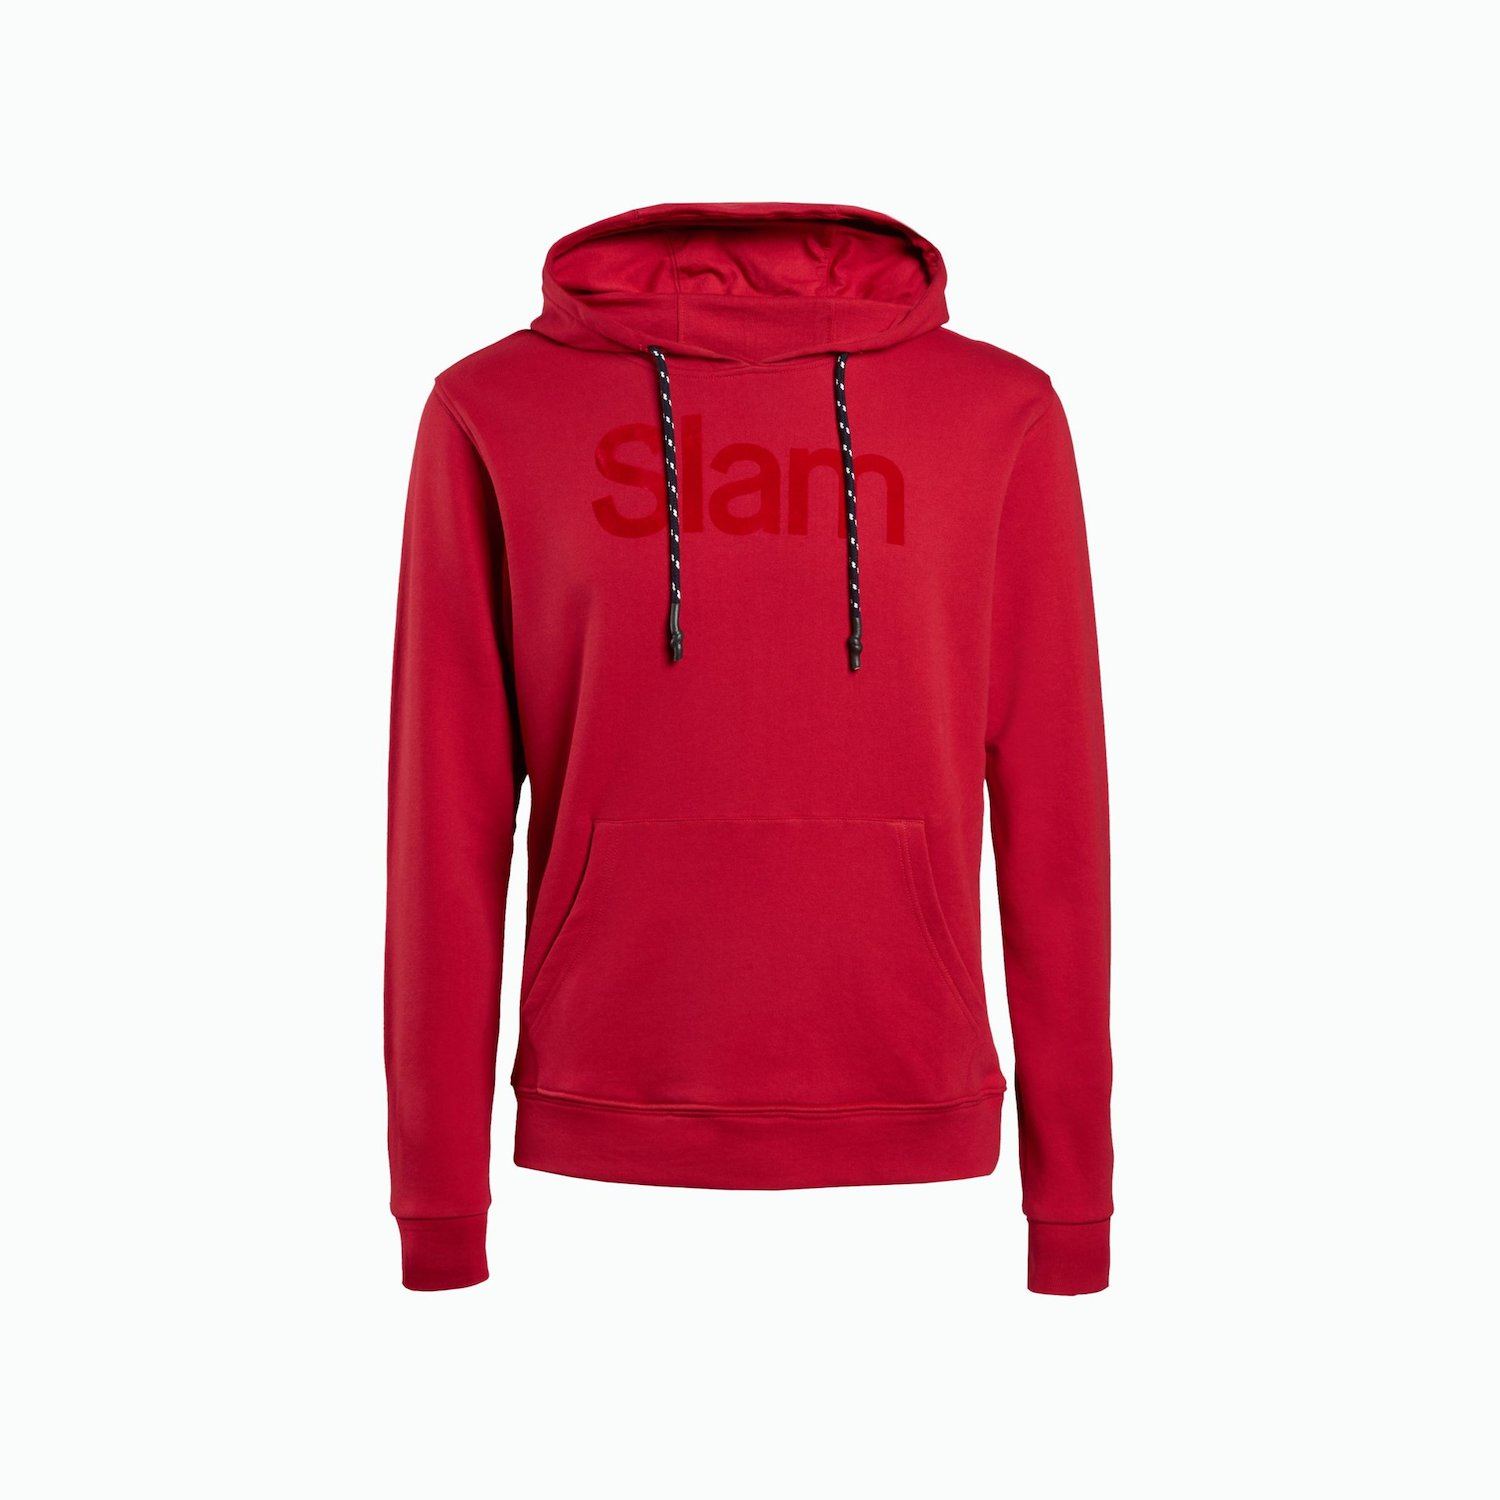 Sweatshirt Comber - Chili Red